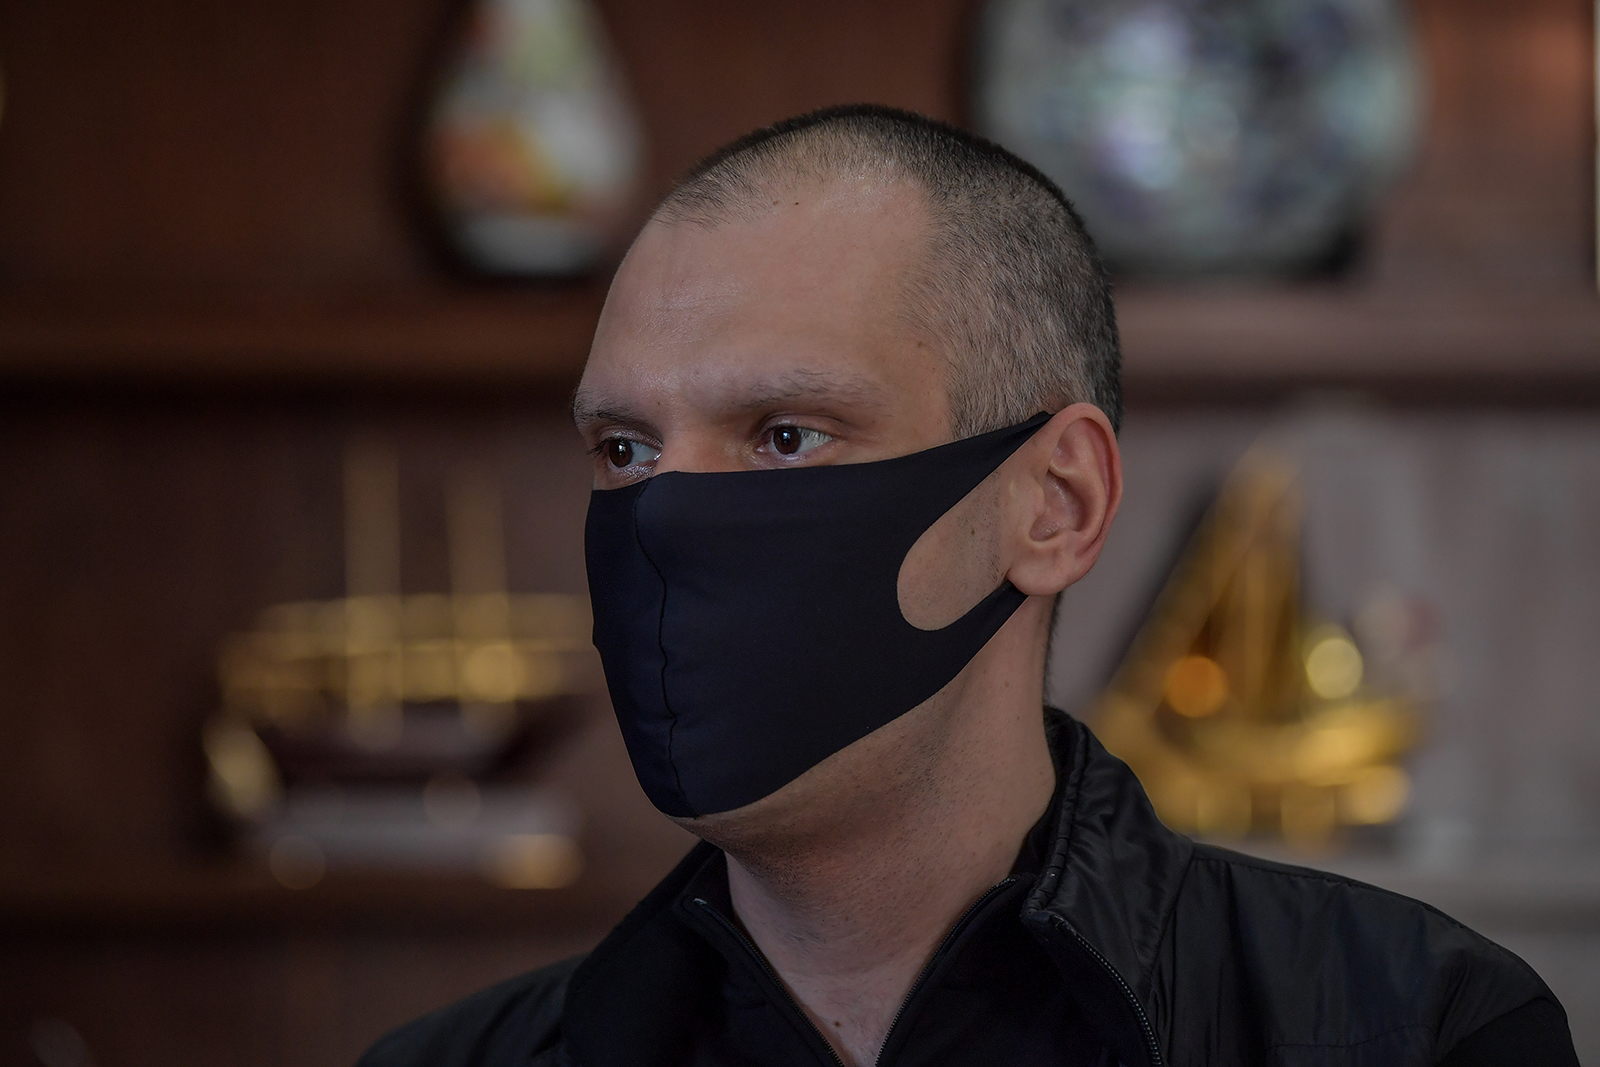 São Paulo's Mayor Bruno Covas wears a face mask as he speaks during an interview with AFP at the City Hall of São Paulo, Brazil, on May 21.